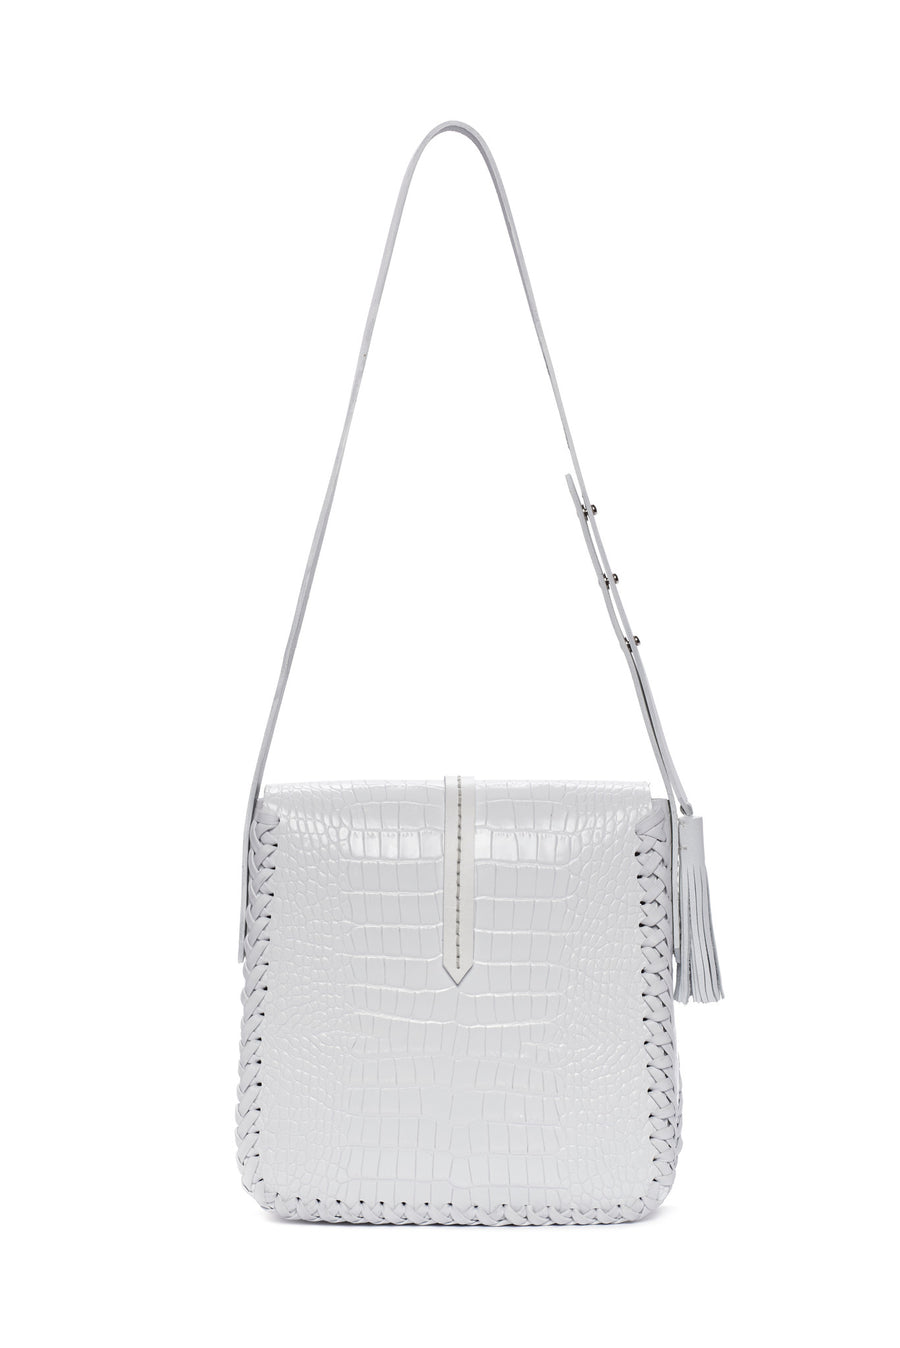 Shiny Summer White Embossed Croc Crocodile Alligator Cow Cowhide Soft Lambskin Embossed Basket Weave pattern Leather Classic Saddle Envelope Flap Closure Bag Wendy Nichol Handbag Purse Designer Handmade in NYC New York City Cross Body Adjustable Strap interior pocket Fringe Tassel Tassels Structured Braided Square High Quality Leather